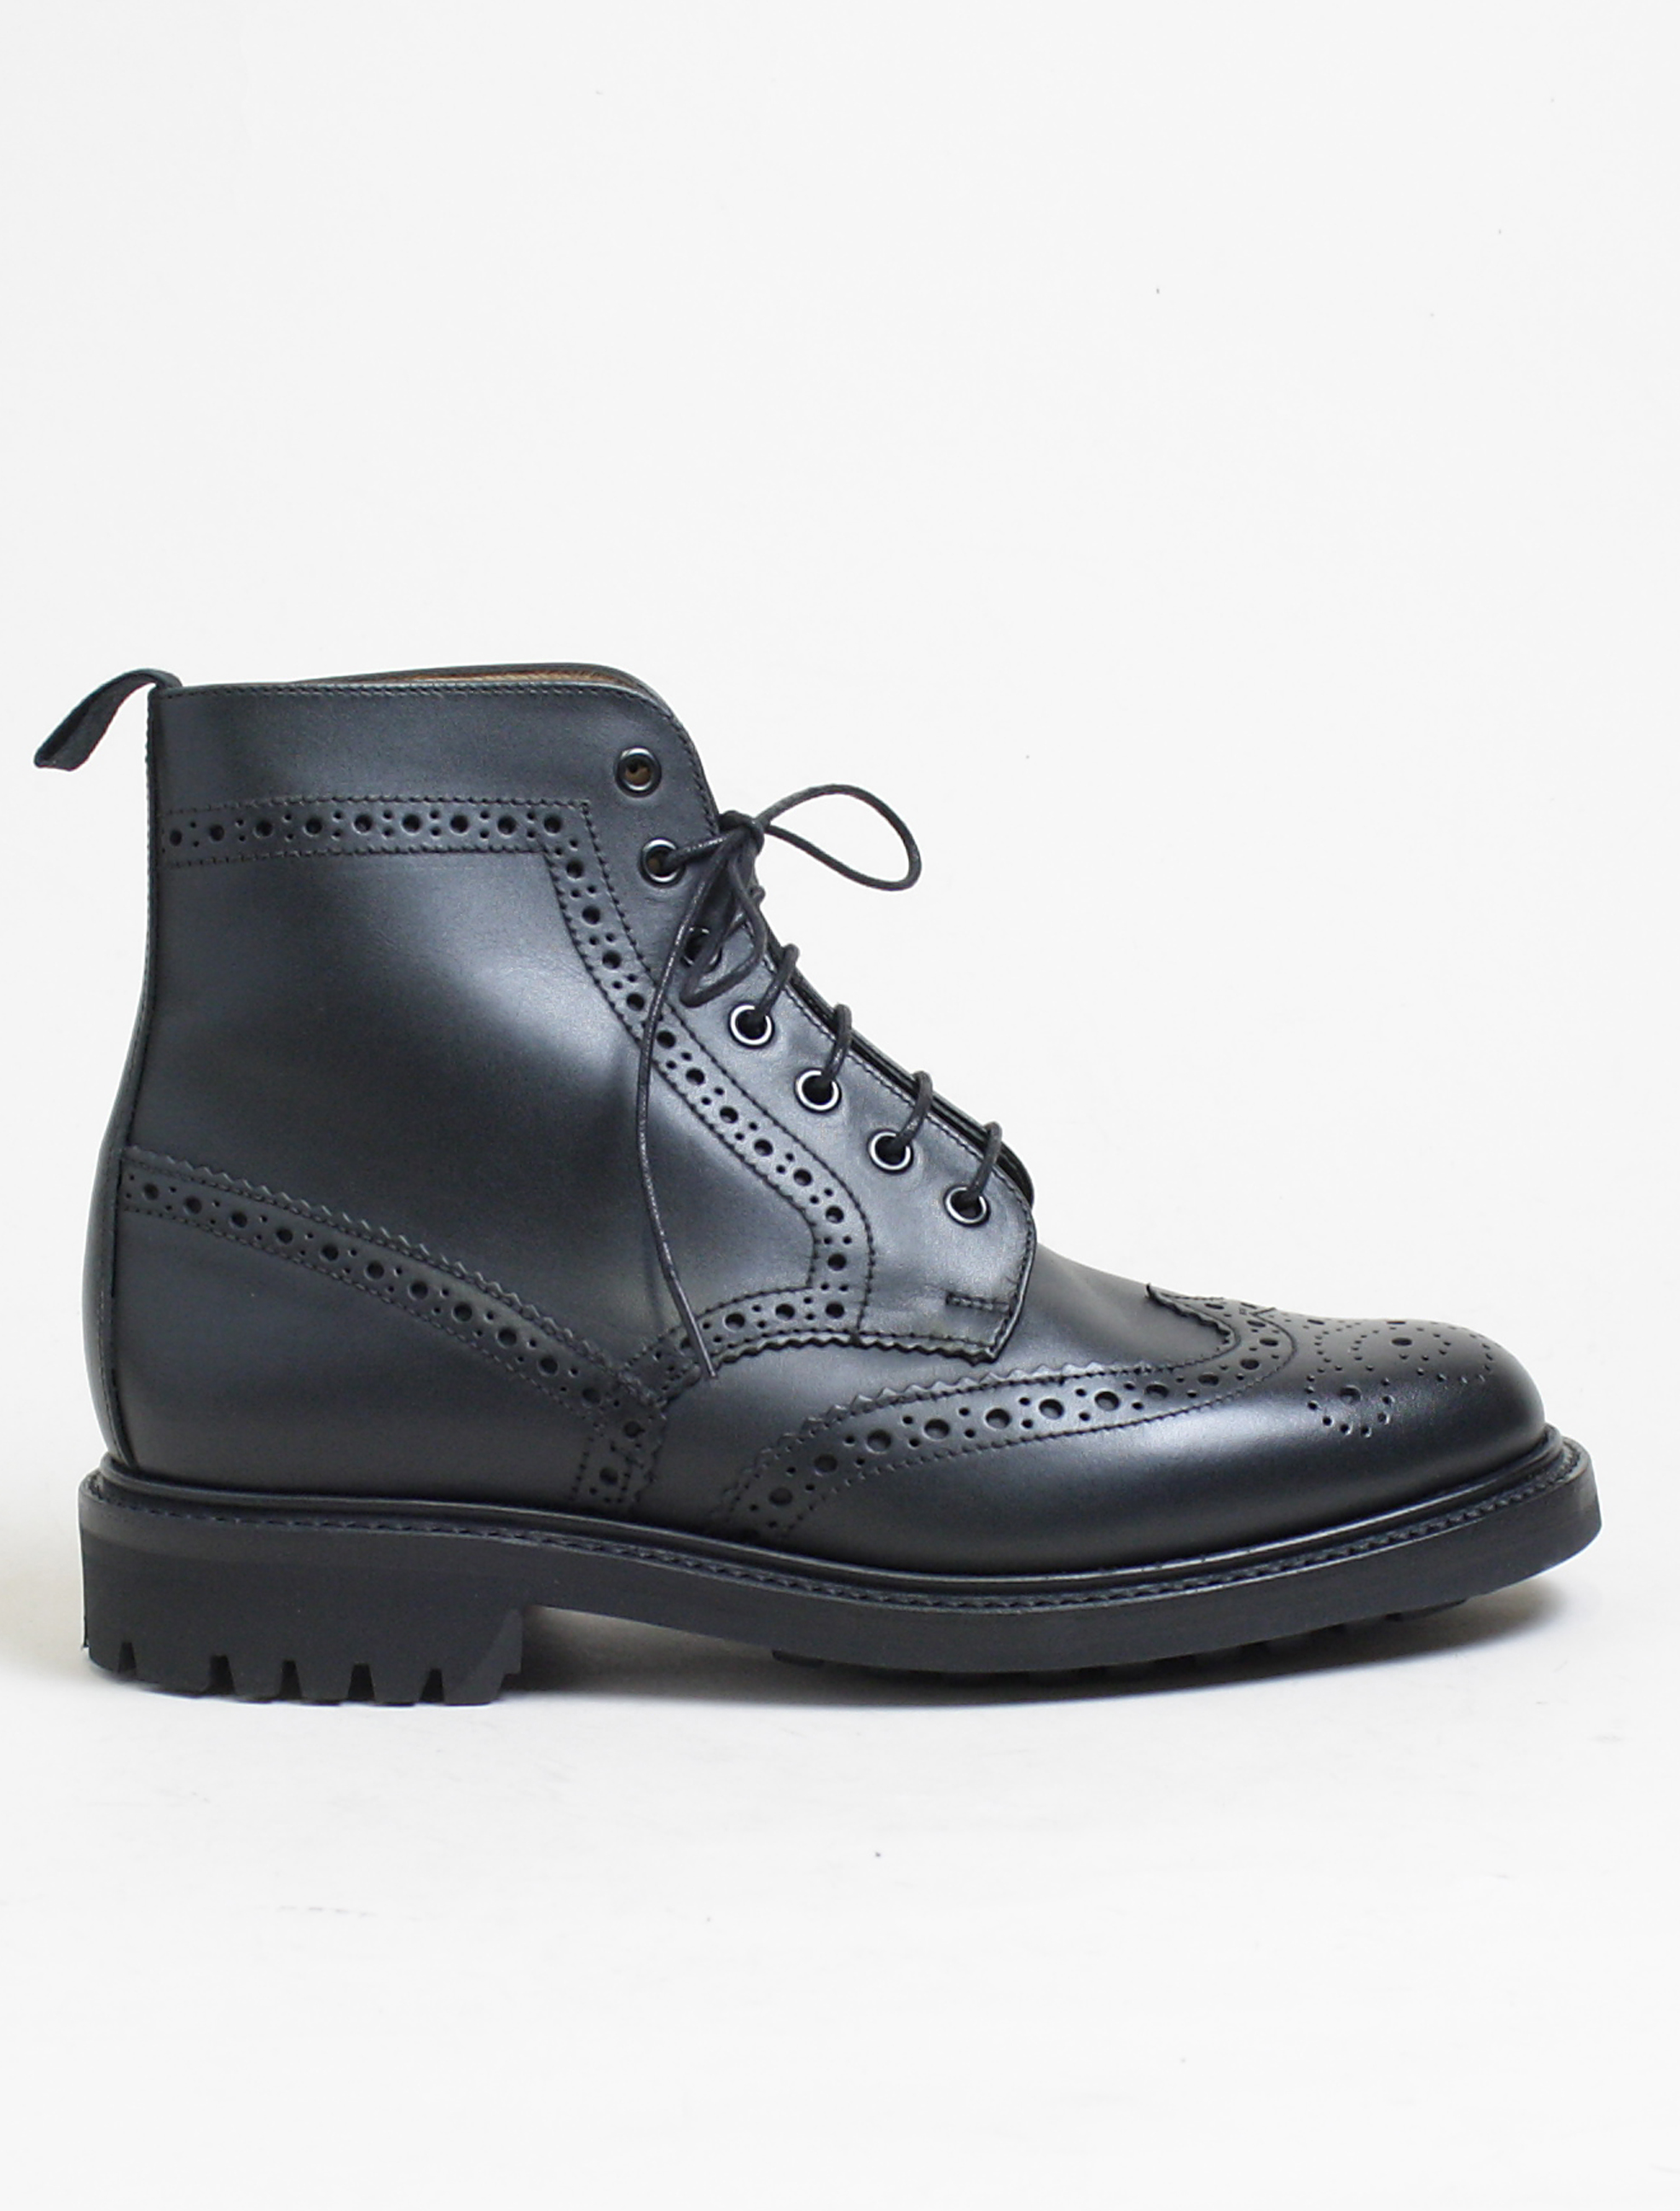 Sanders 8317 Cheltenham black brogue derby boot